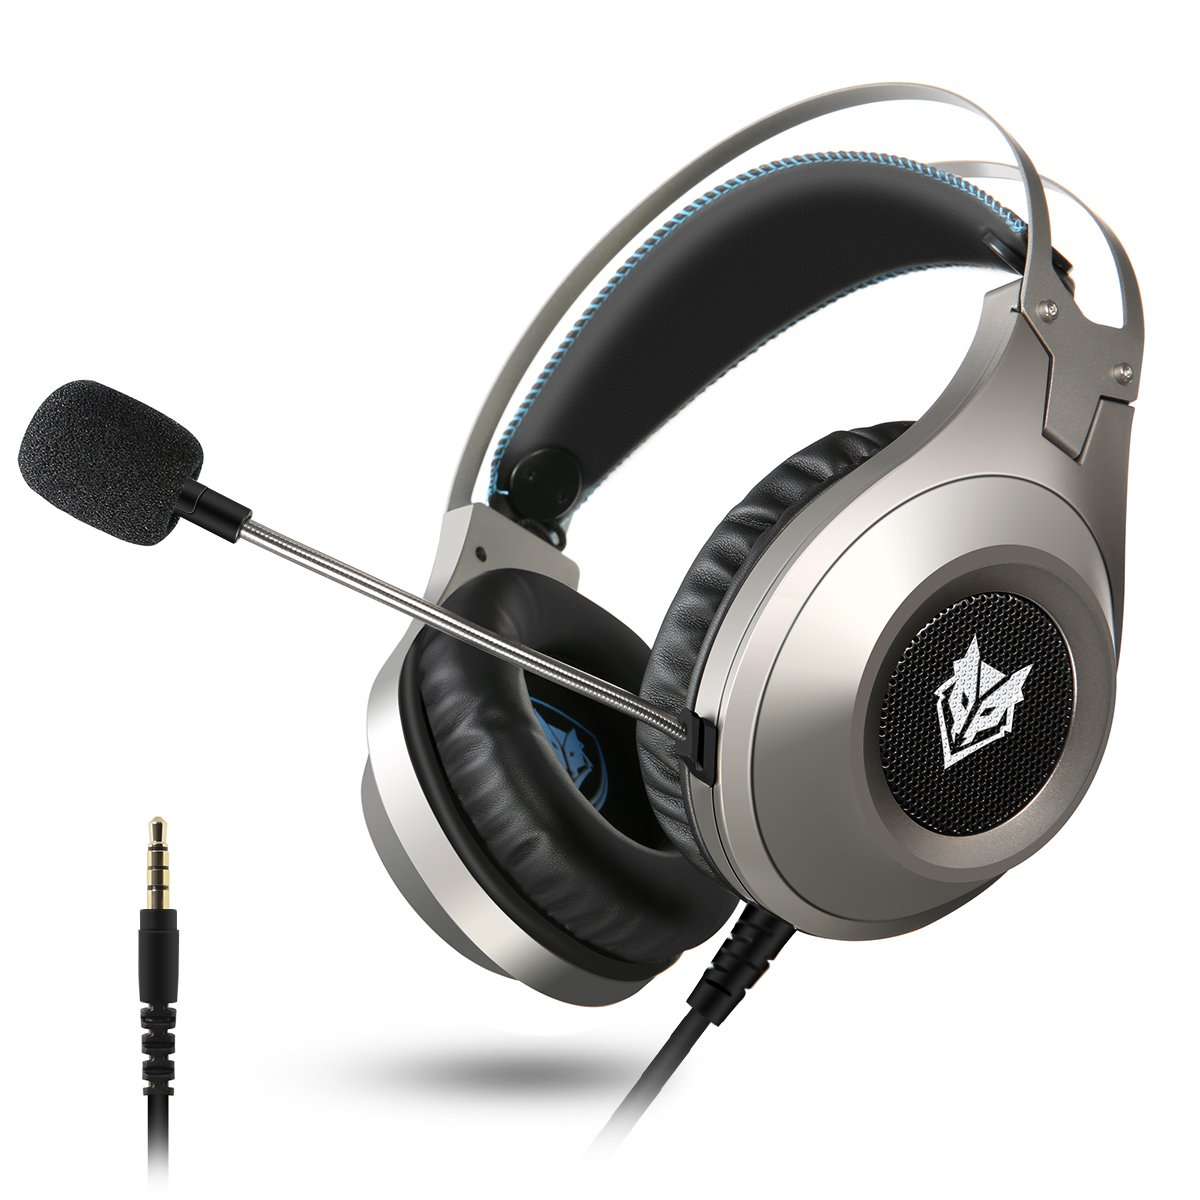 Computer Headsets, ELEGIANT Over-Ear Gaming Headphone with Microphone, Bass Stereo Surround Sound Volume Control, Compatible with PS4 Pro/PS4 Xbox One Nintendo Switch PC Mobilephone Laptop Mac-Silver